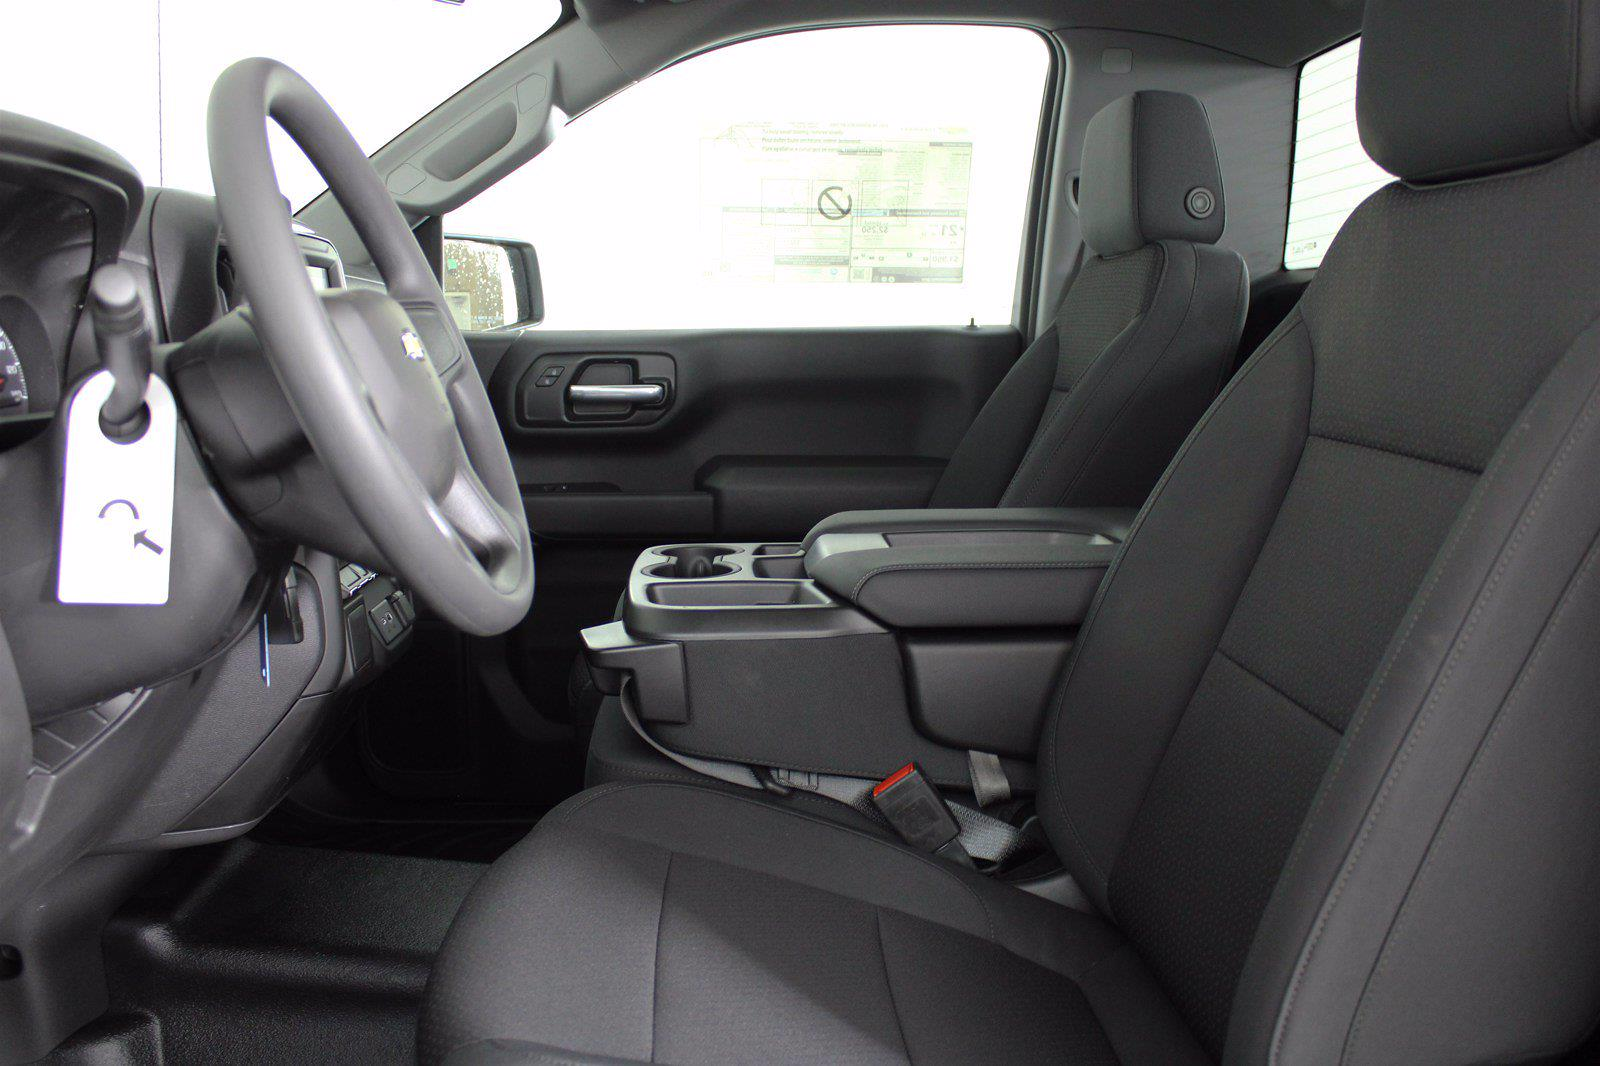 2021 Chevrolet Silverado 1500 Regular Cab 4x2, Pickup #D110765 - photo 14